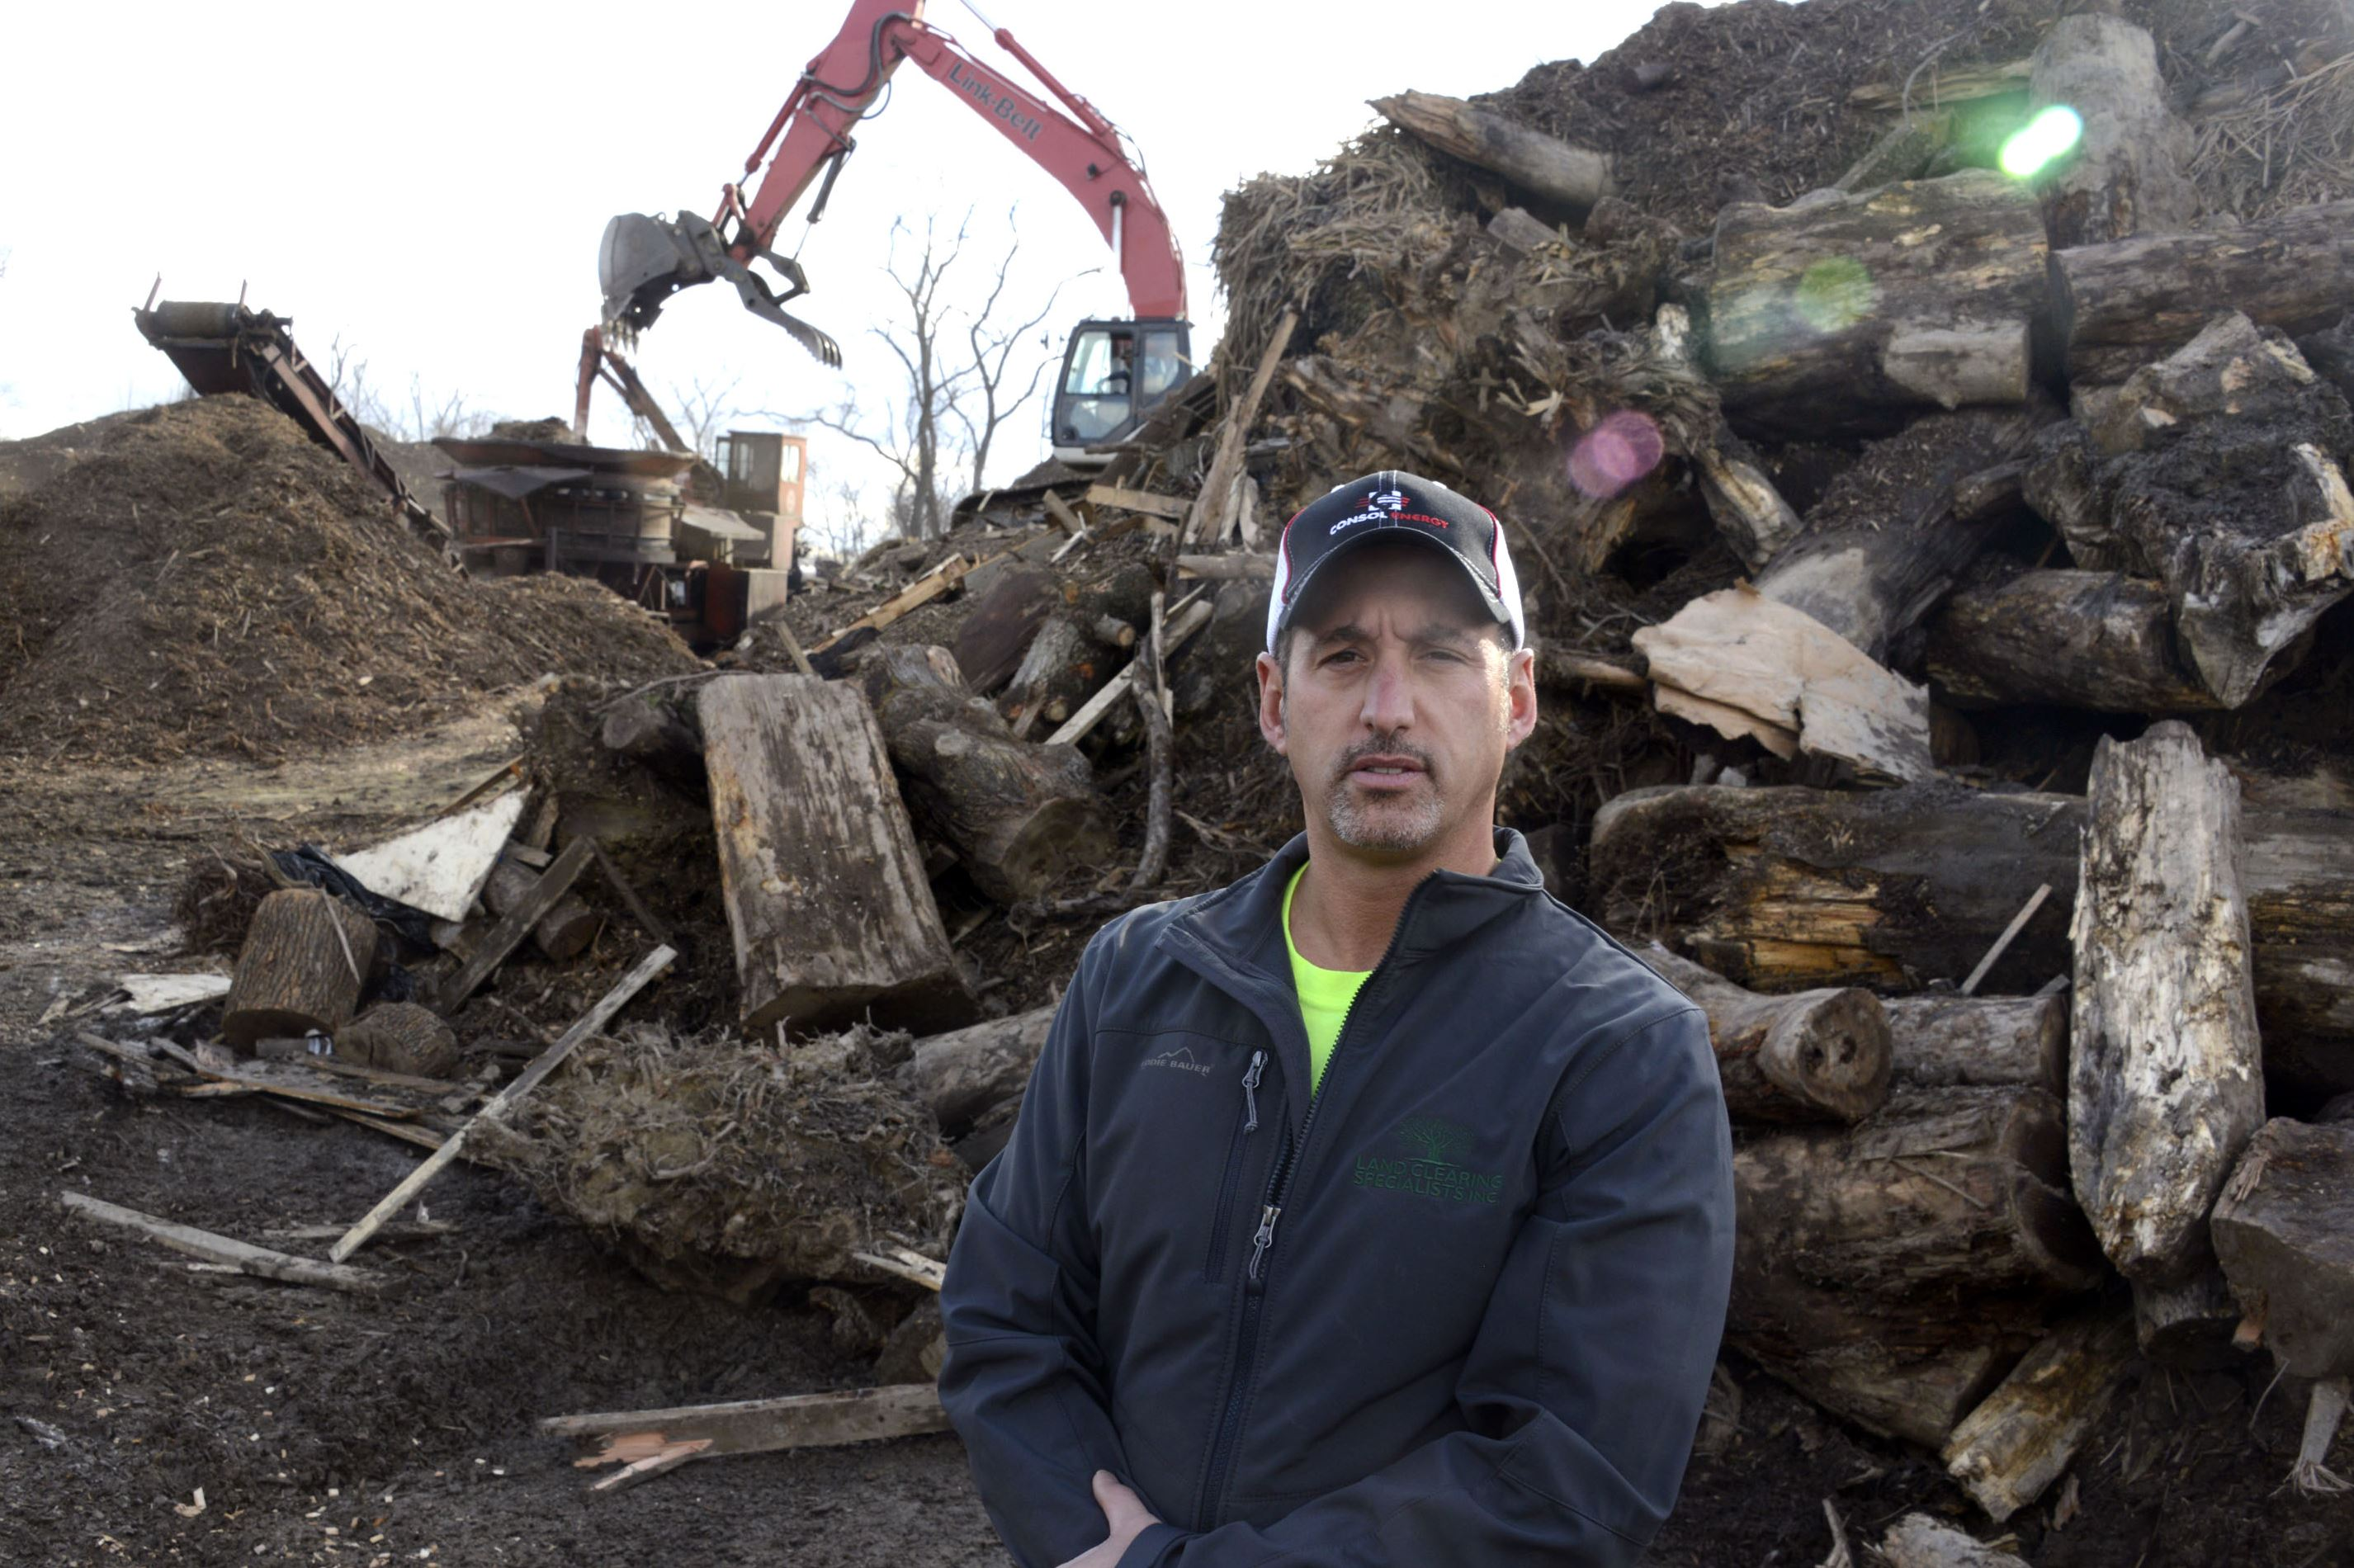 "20141124dsLandclearing1202Biz01 Eric Vaccarello , president of Land Clearing Specialists Inc., stands near stumps and woodwaste placed in a ""grinder"" making wood chips. Vaccarello owns one of the largest land-clearing and reclamation services operating in the Marcellus and Utica Shales areas."